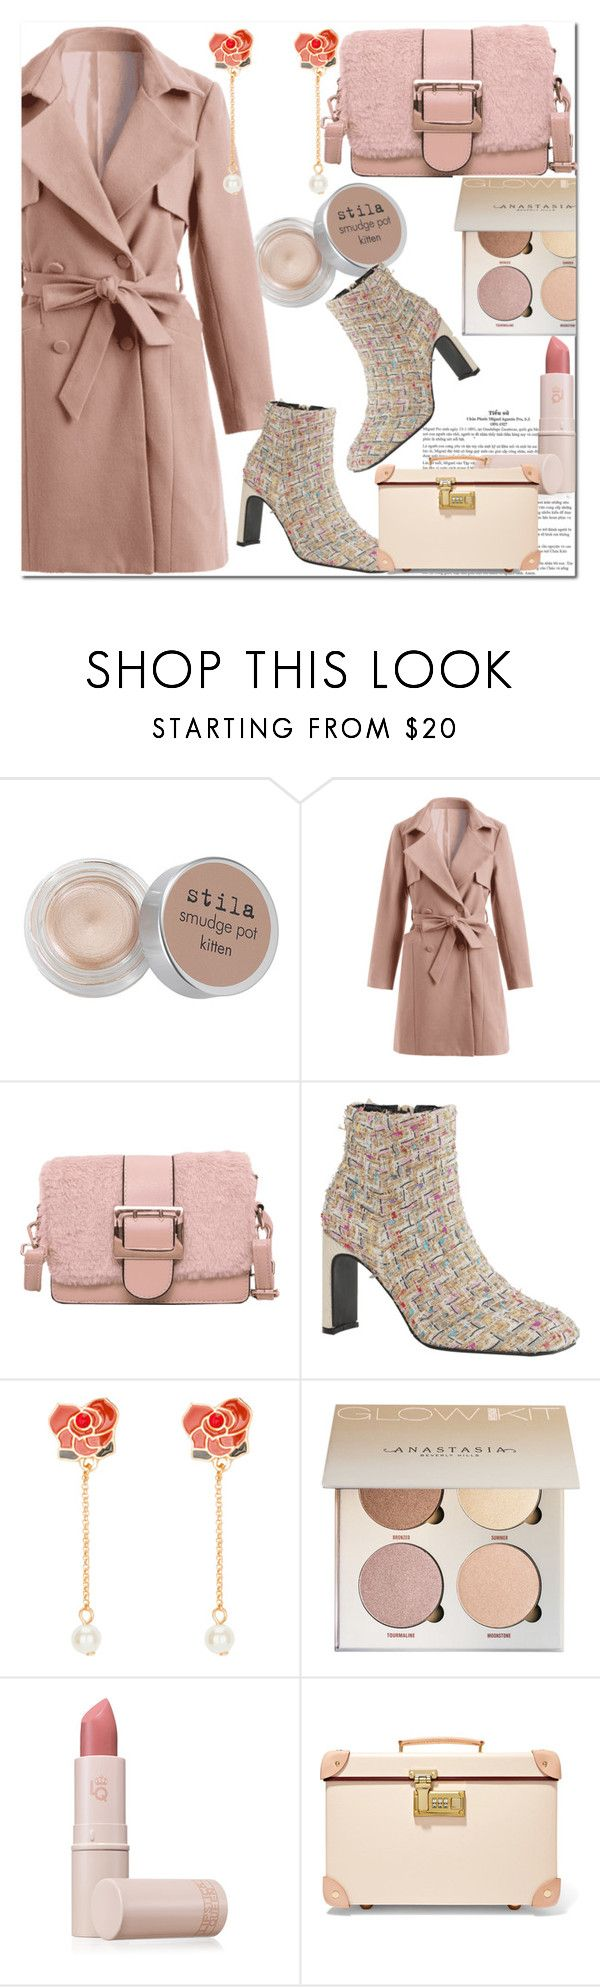 """Fashion style"" by majaa12 ❤ liked on Polyvore featuring Stila, Lipstick Queen and Globe-Trotter"